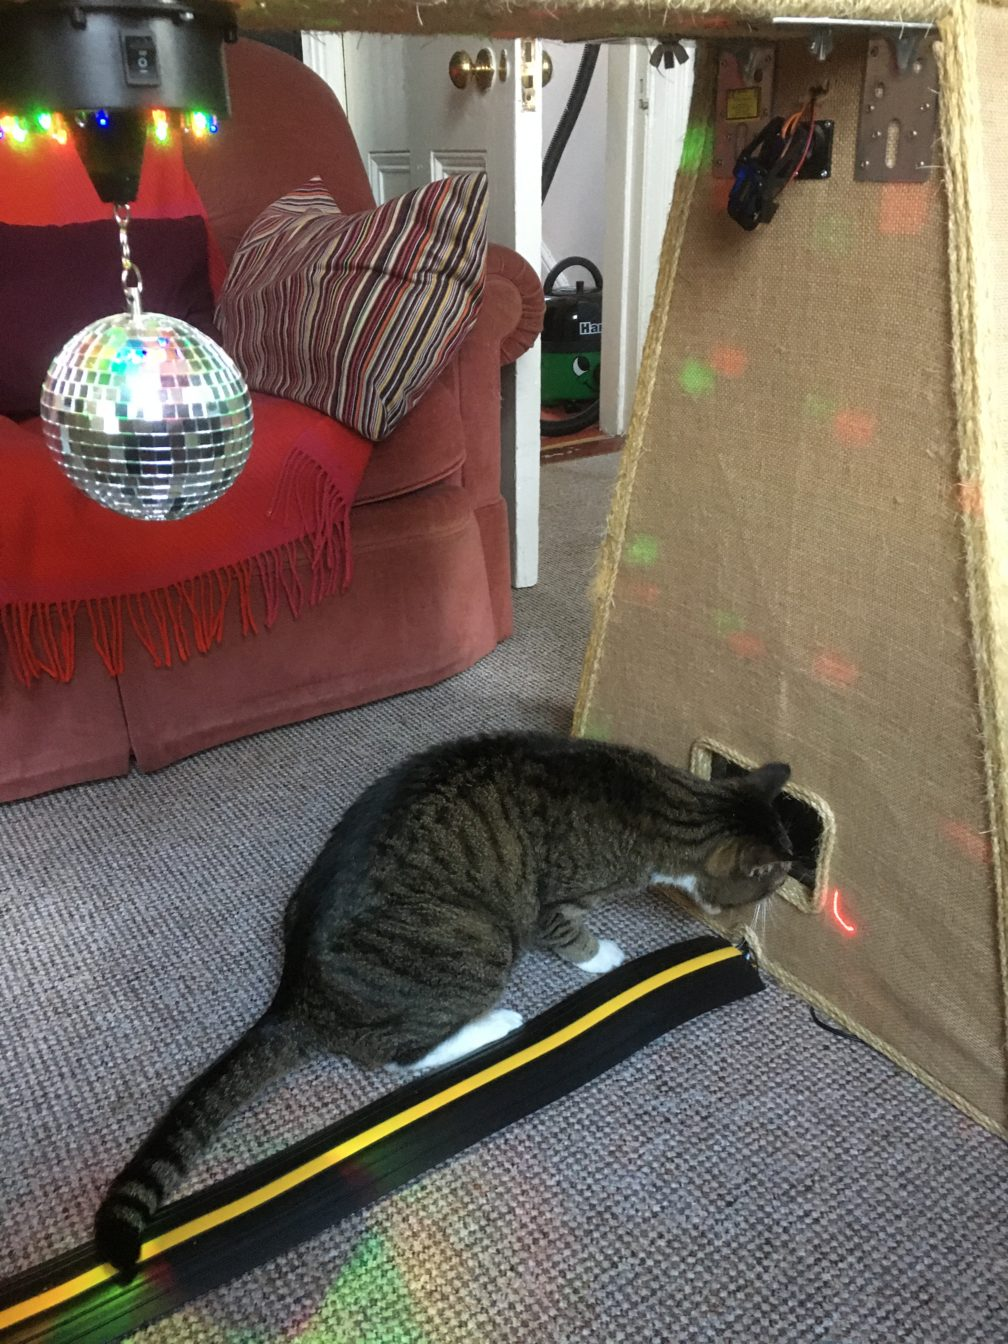 More Feline Mobile Disco dates added